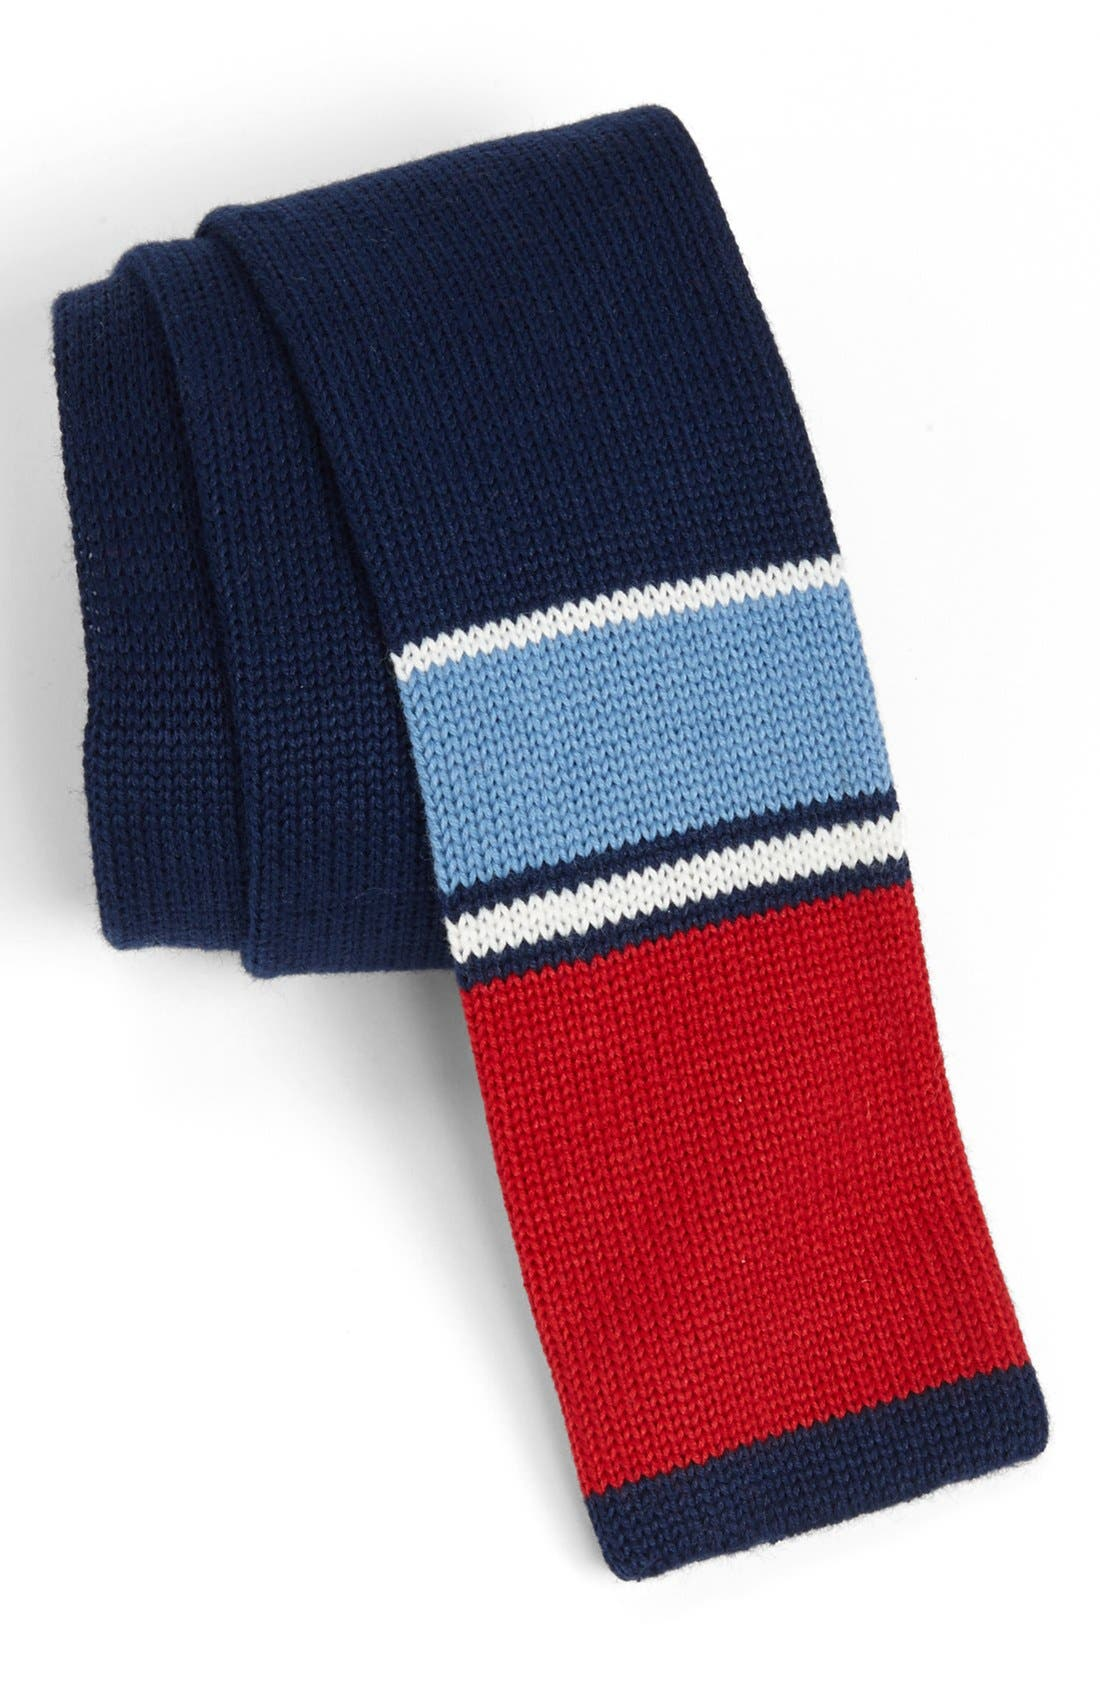 Main Image - 1901 Knit Cotton Tie